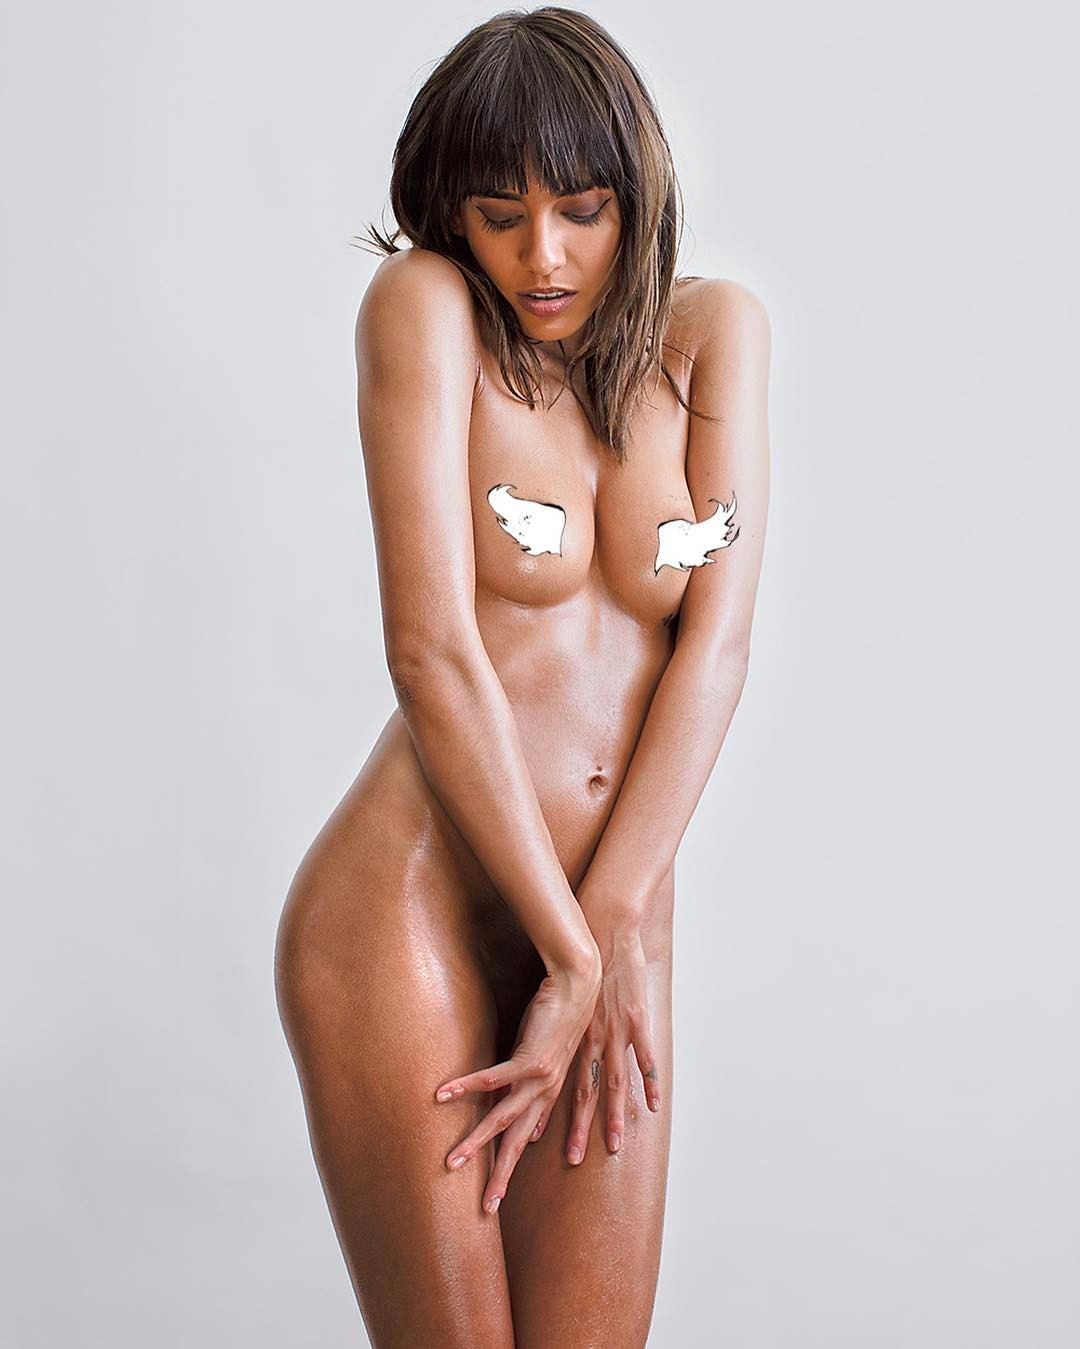 Hottest janice griffith